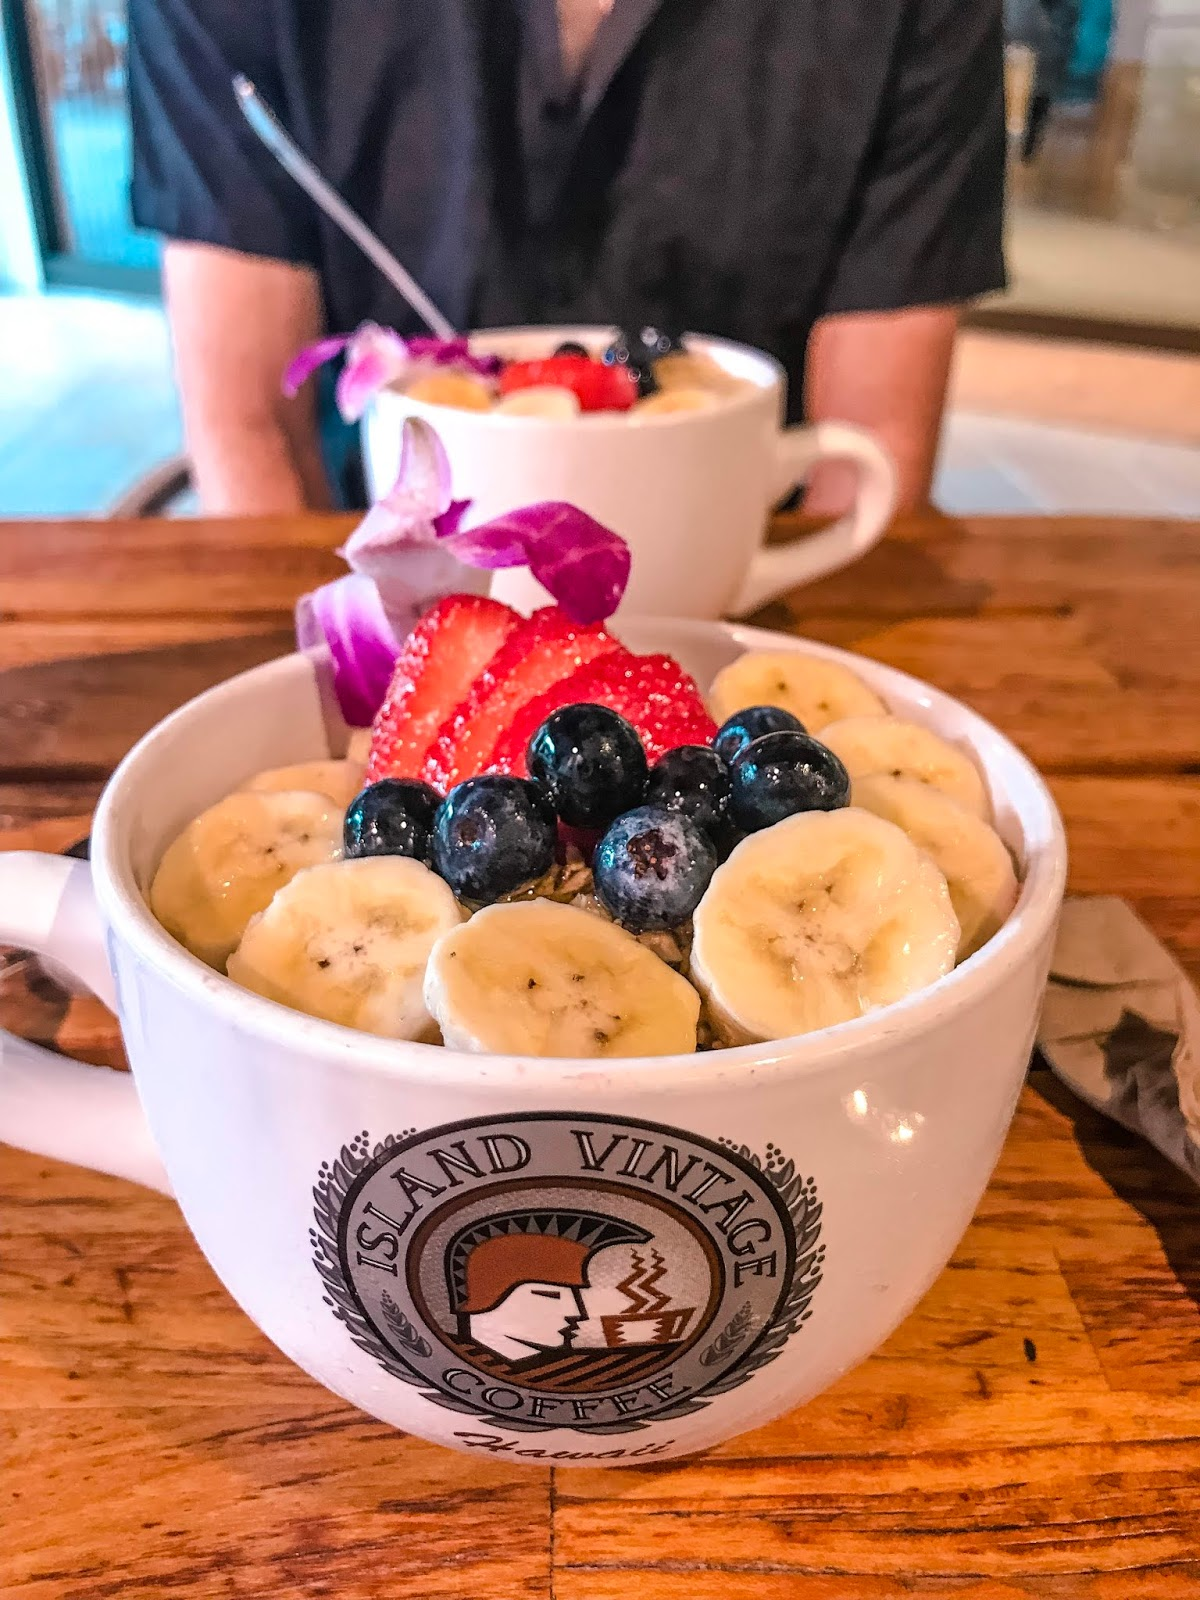 Acai Bowls at Island Vintage Coffee in Waikiki, Hawaii